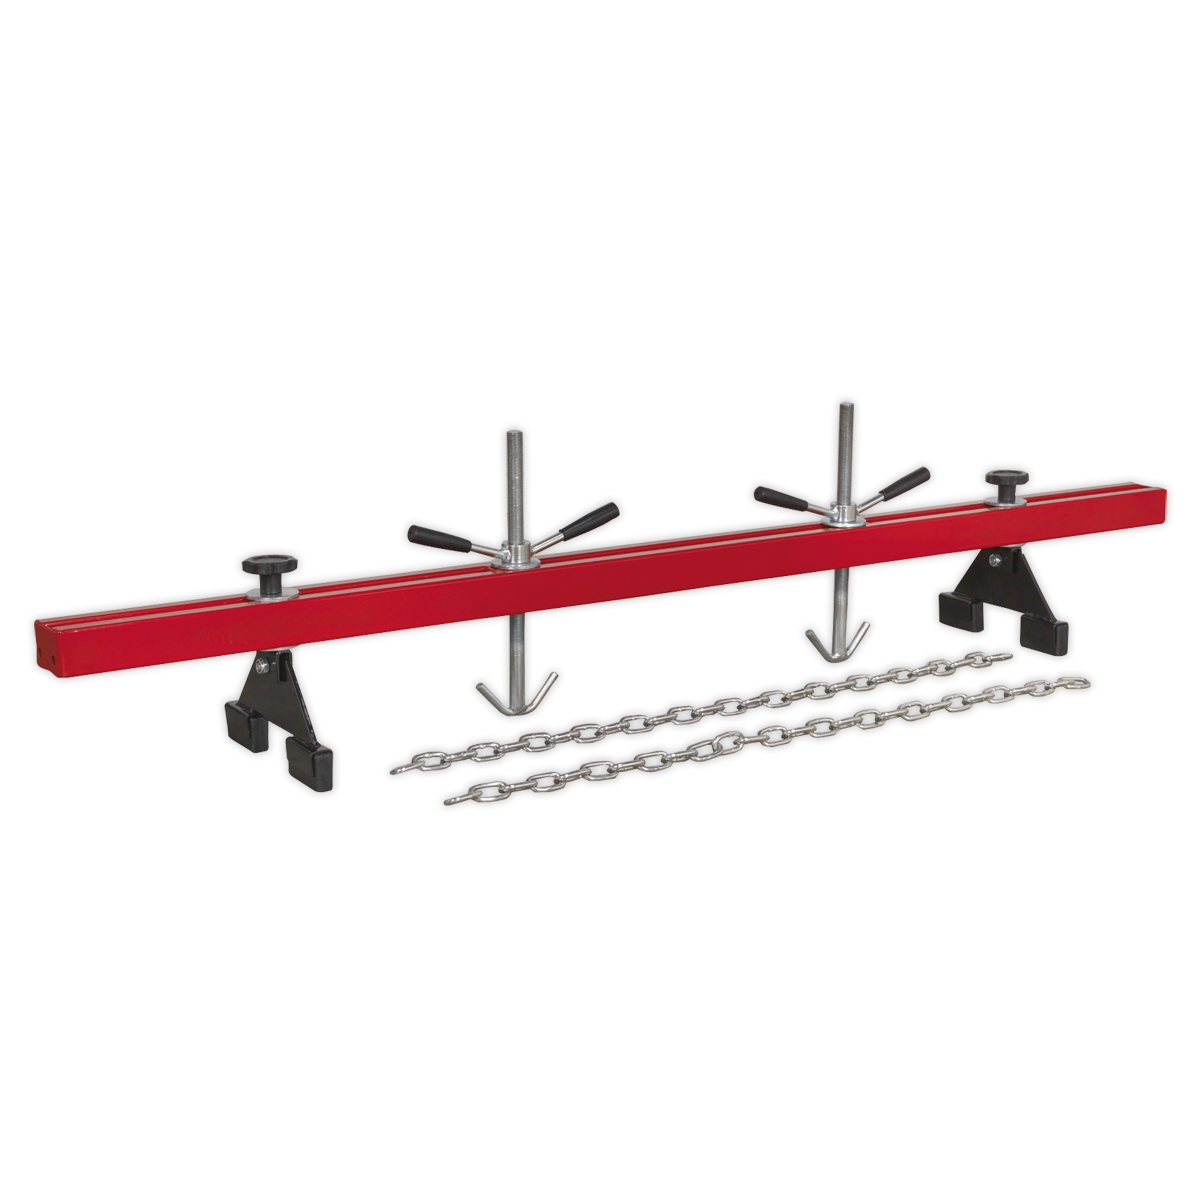 Engine Support Beam 500kg Capacity Double Support